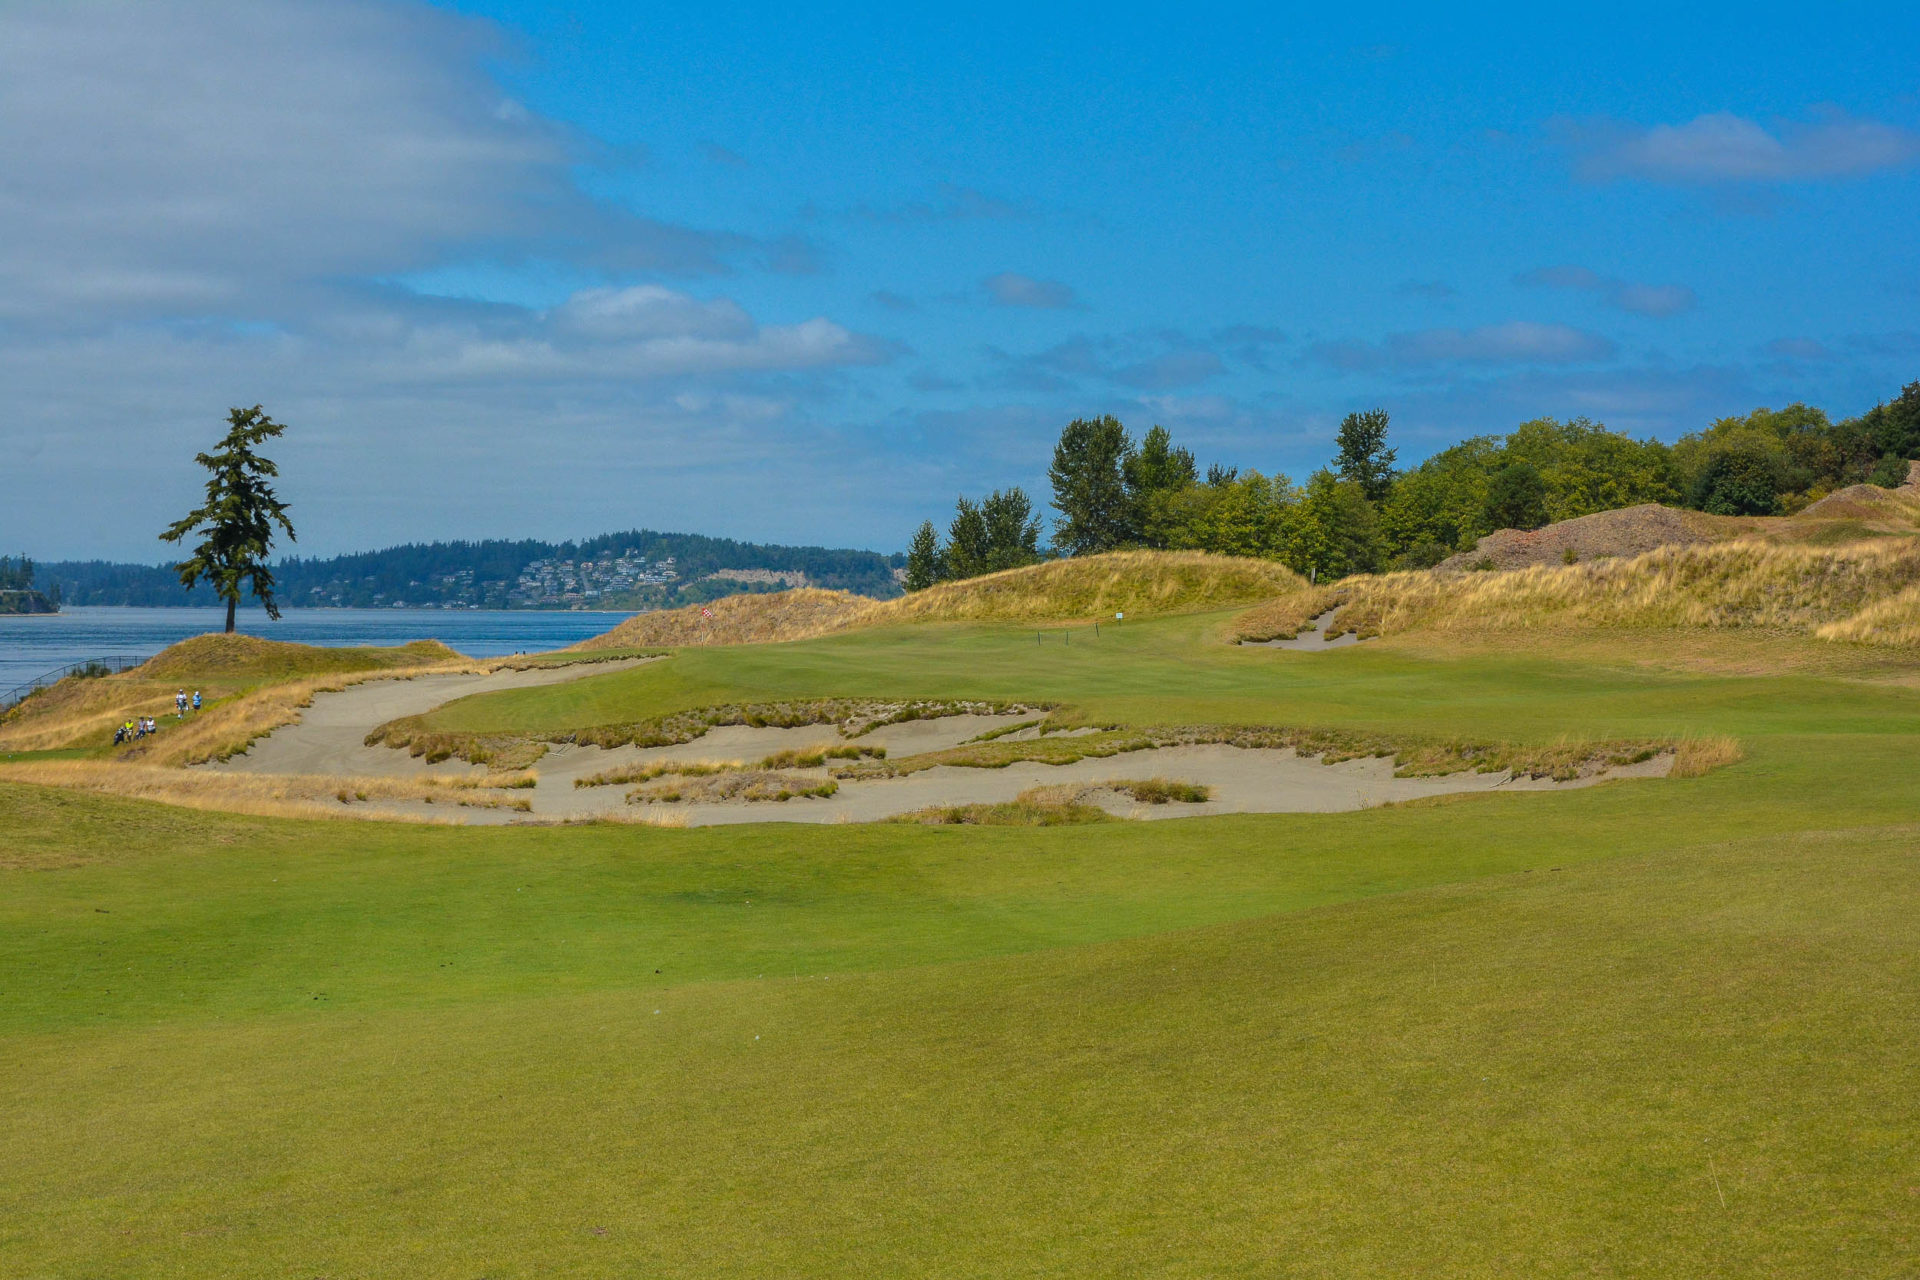 The beautiful second hole at Chambers Bay.